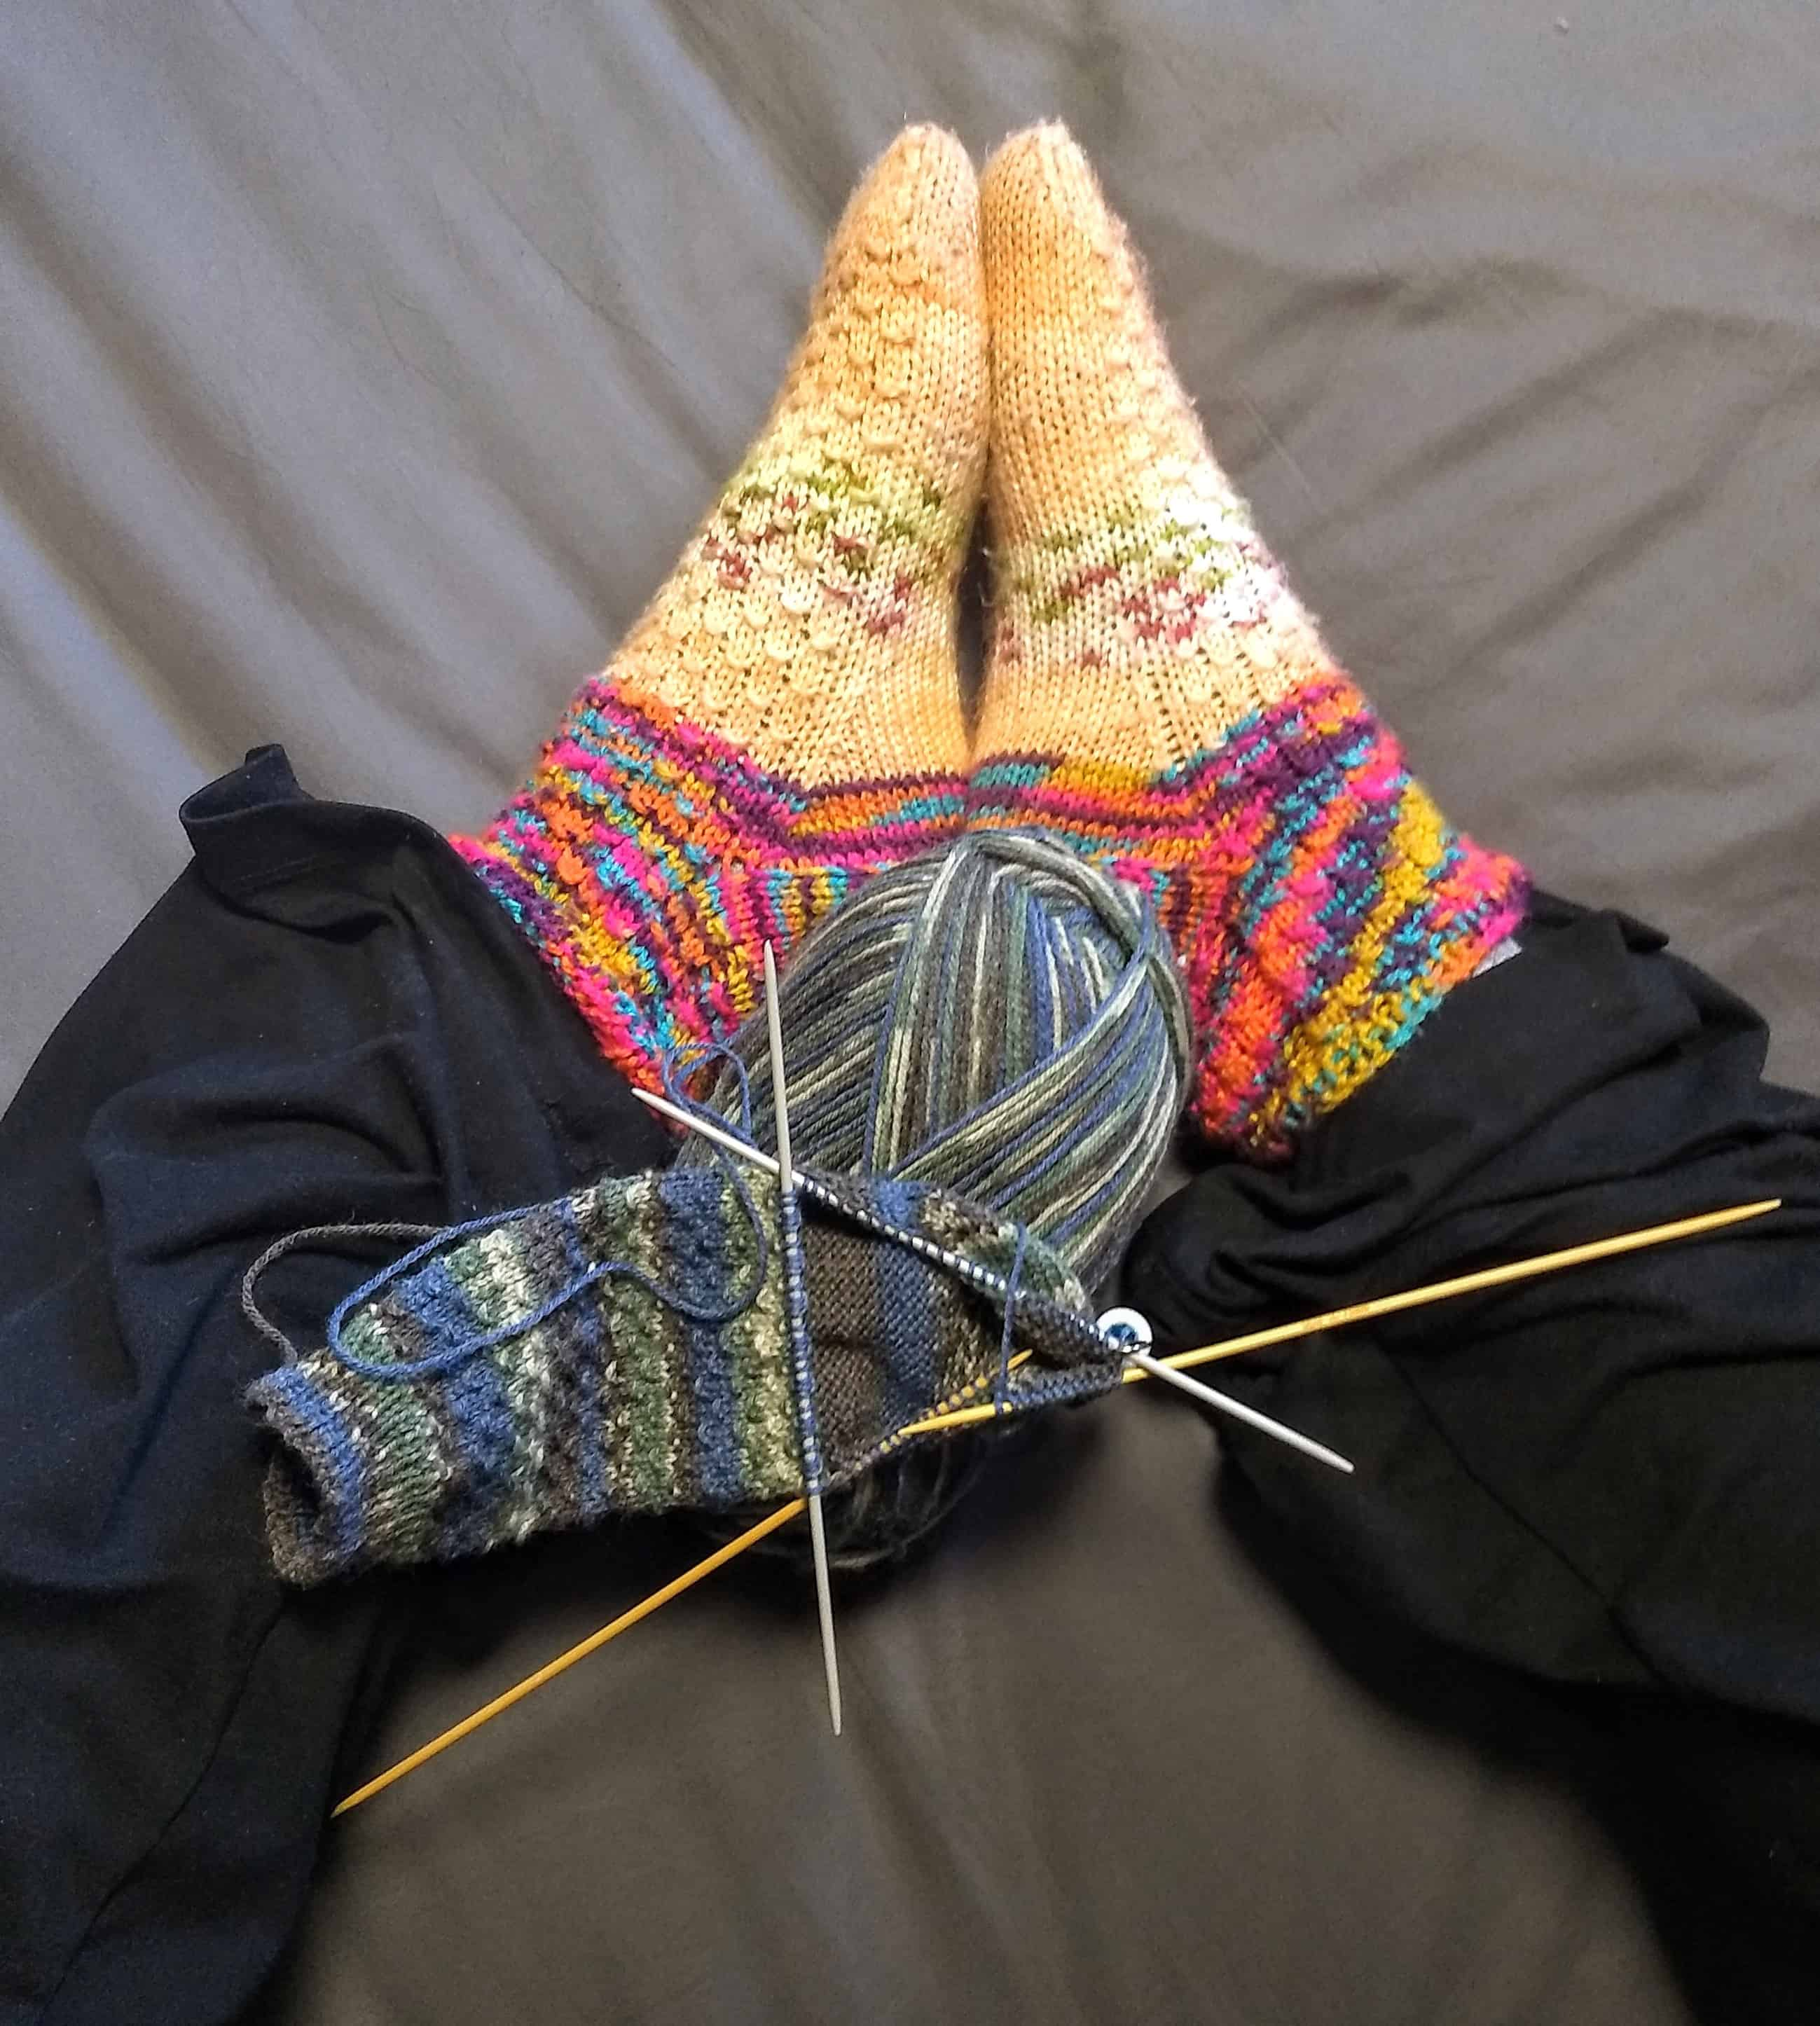 Knitting photo